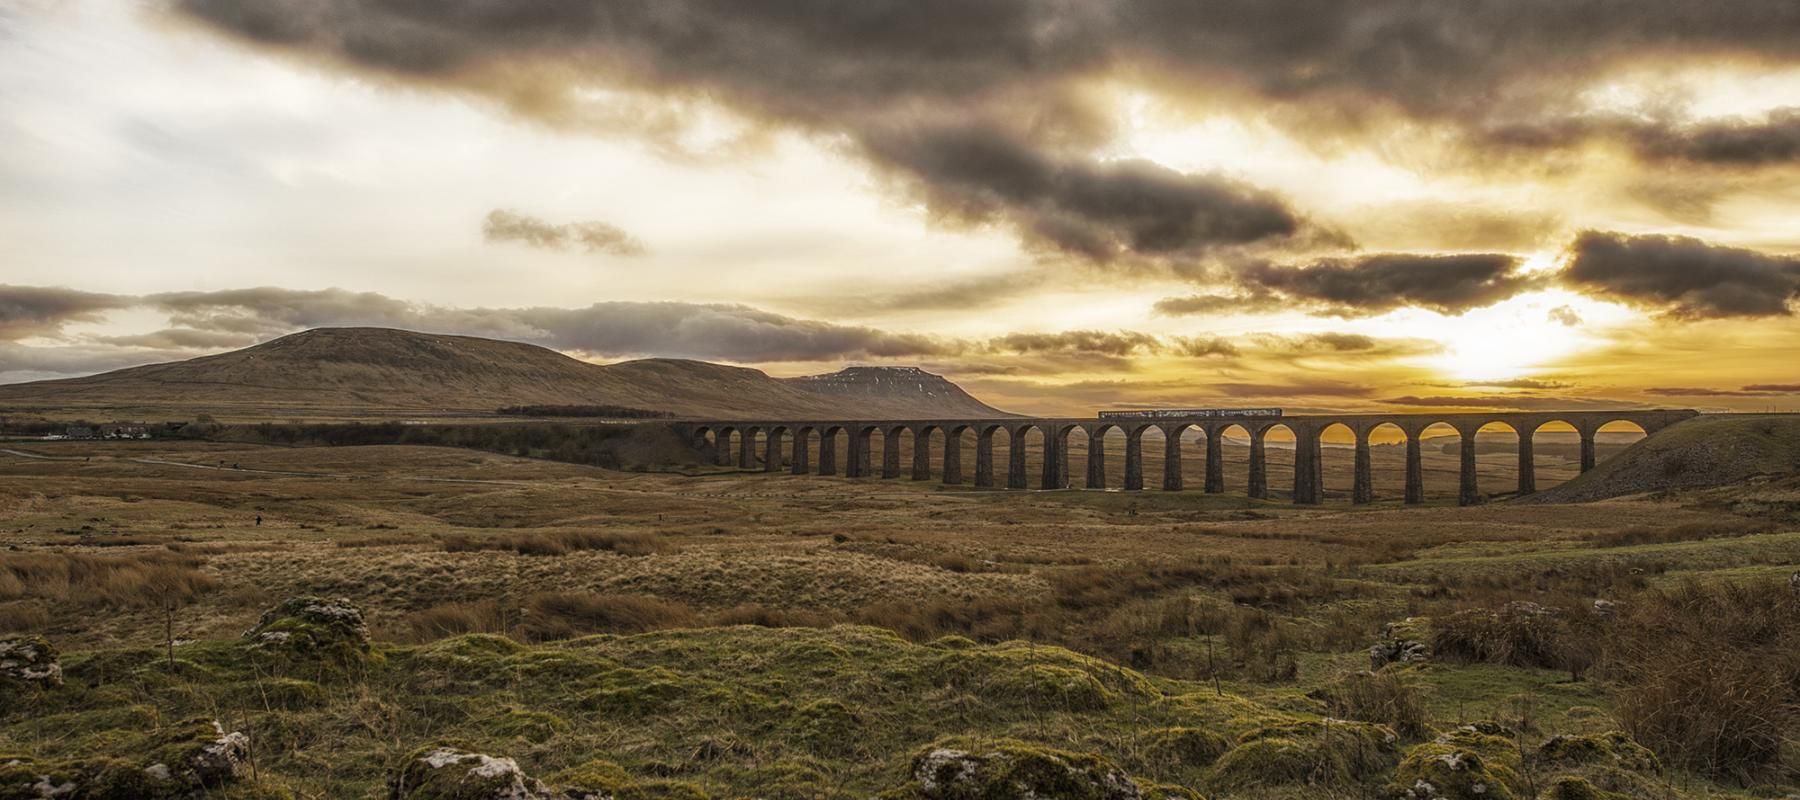 Train on the Settle-Carlisle line with dramatic sunset in the background